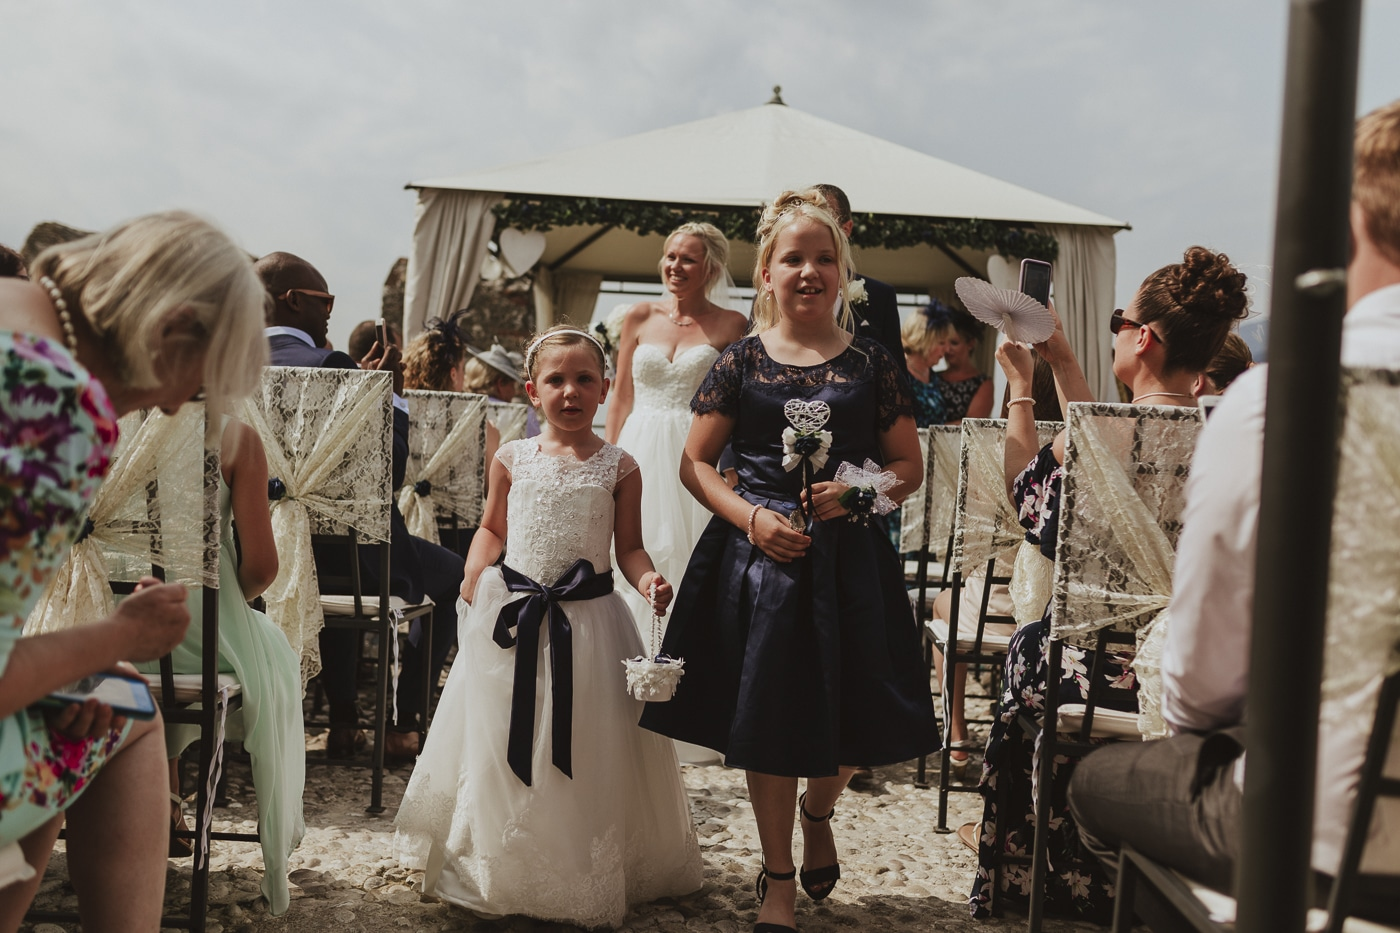 Bridesmaid and flower girl walking up the wedding aisle with lace on chairs and bride in the background